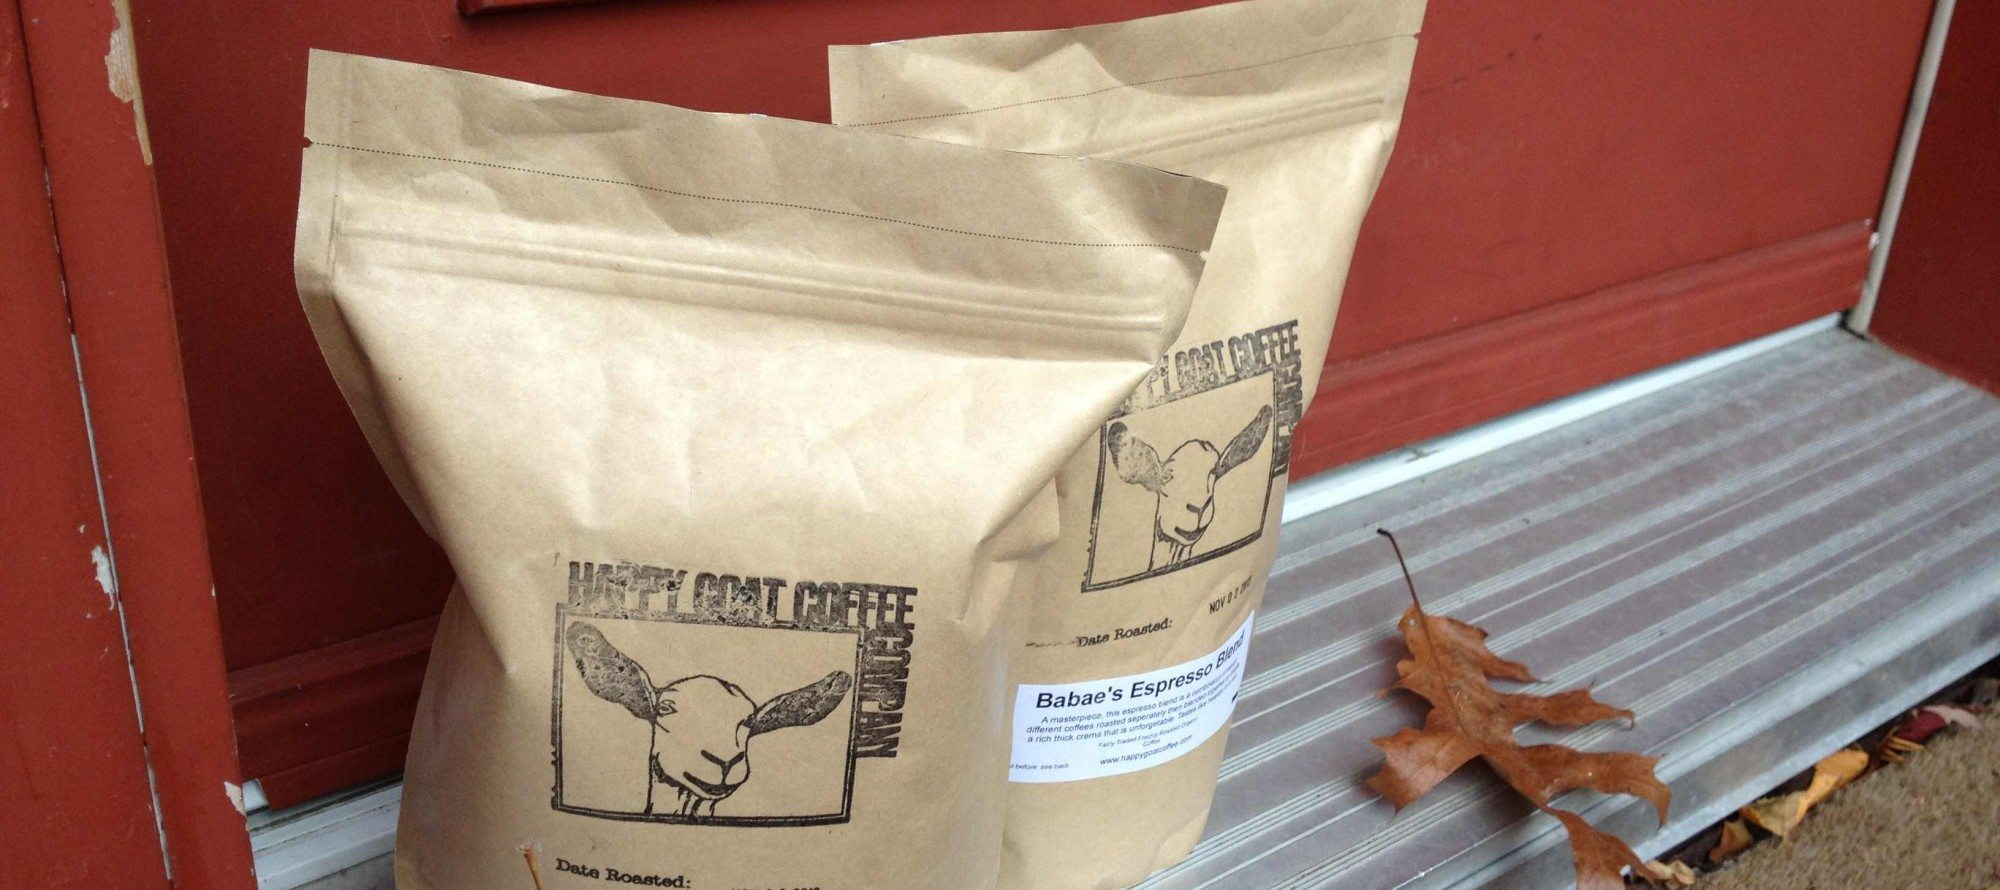 HAPPY CHRISTMAS TO ME! Happiness is… a kilo of Happy Goat coffee beans delivered right to your door